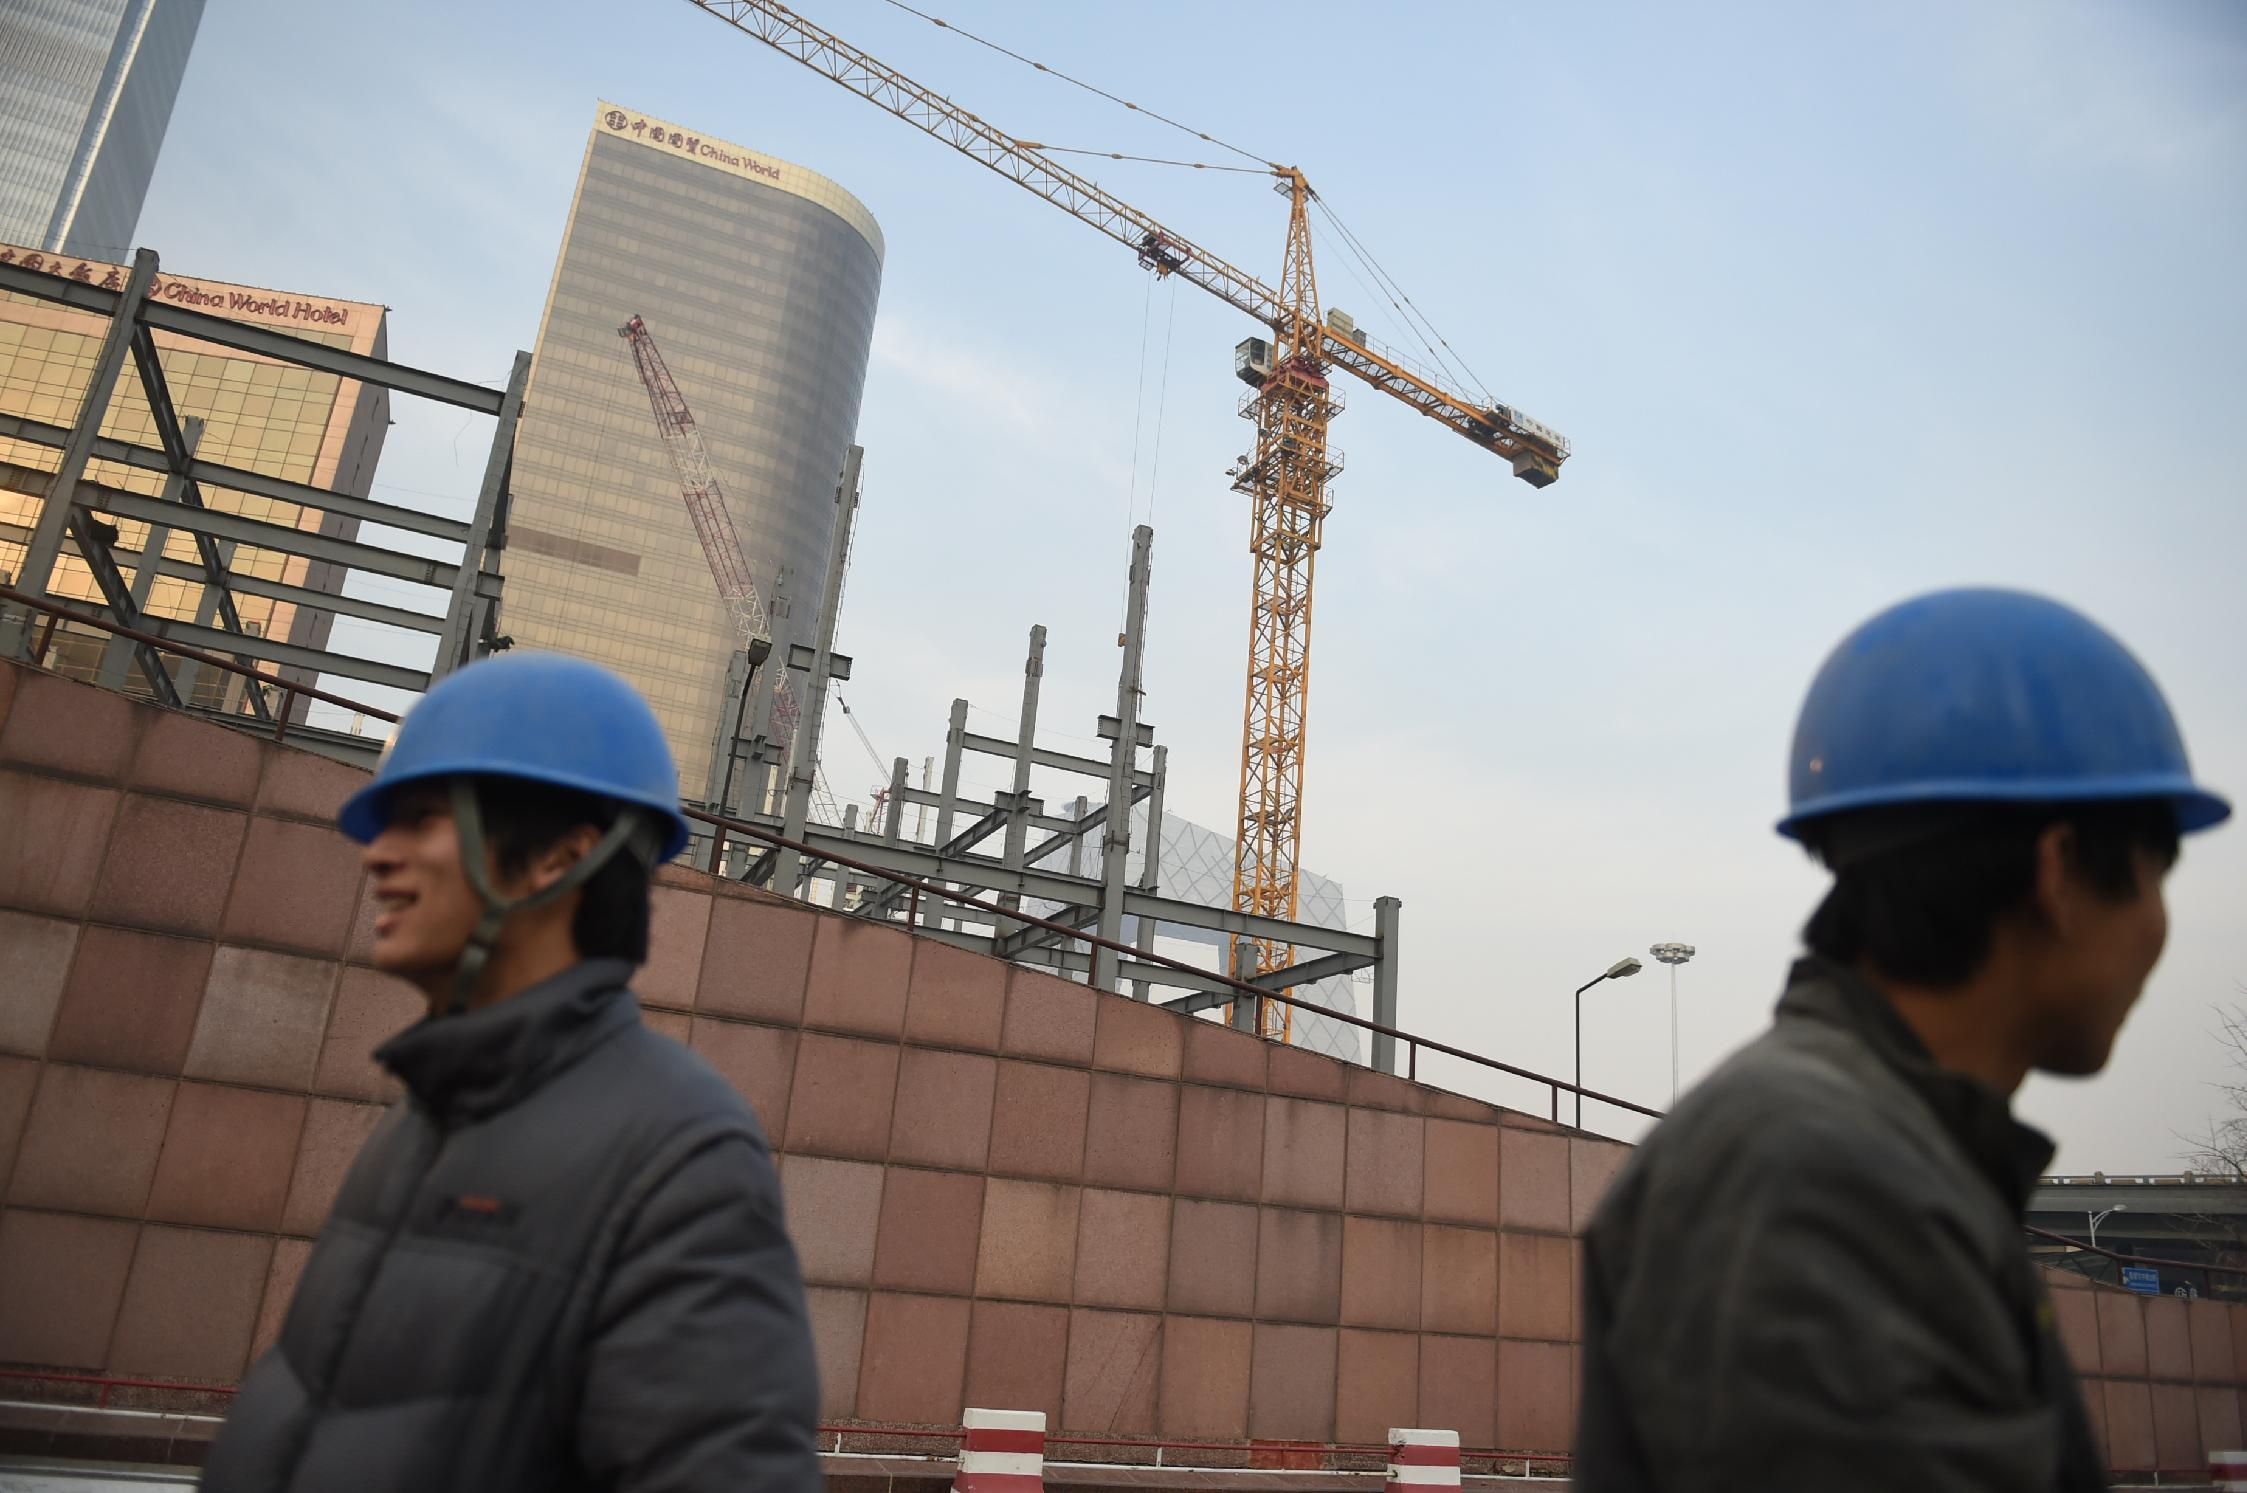 China total GDP revised up 3.4% in 2013, govt data shows